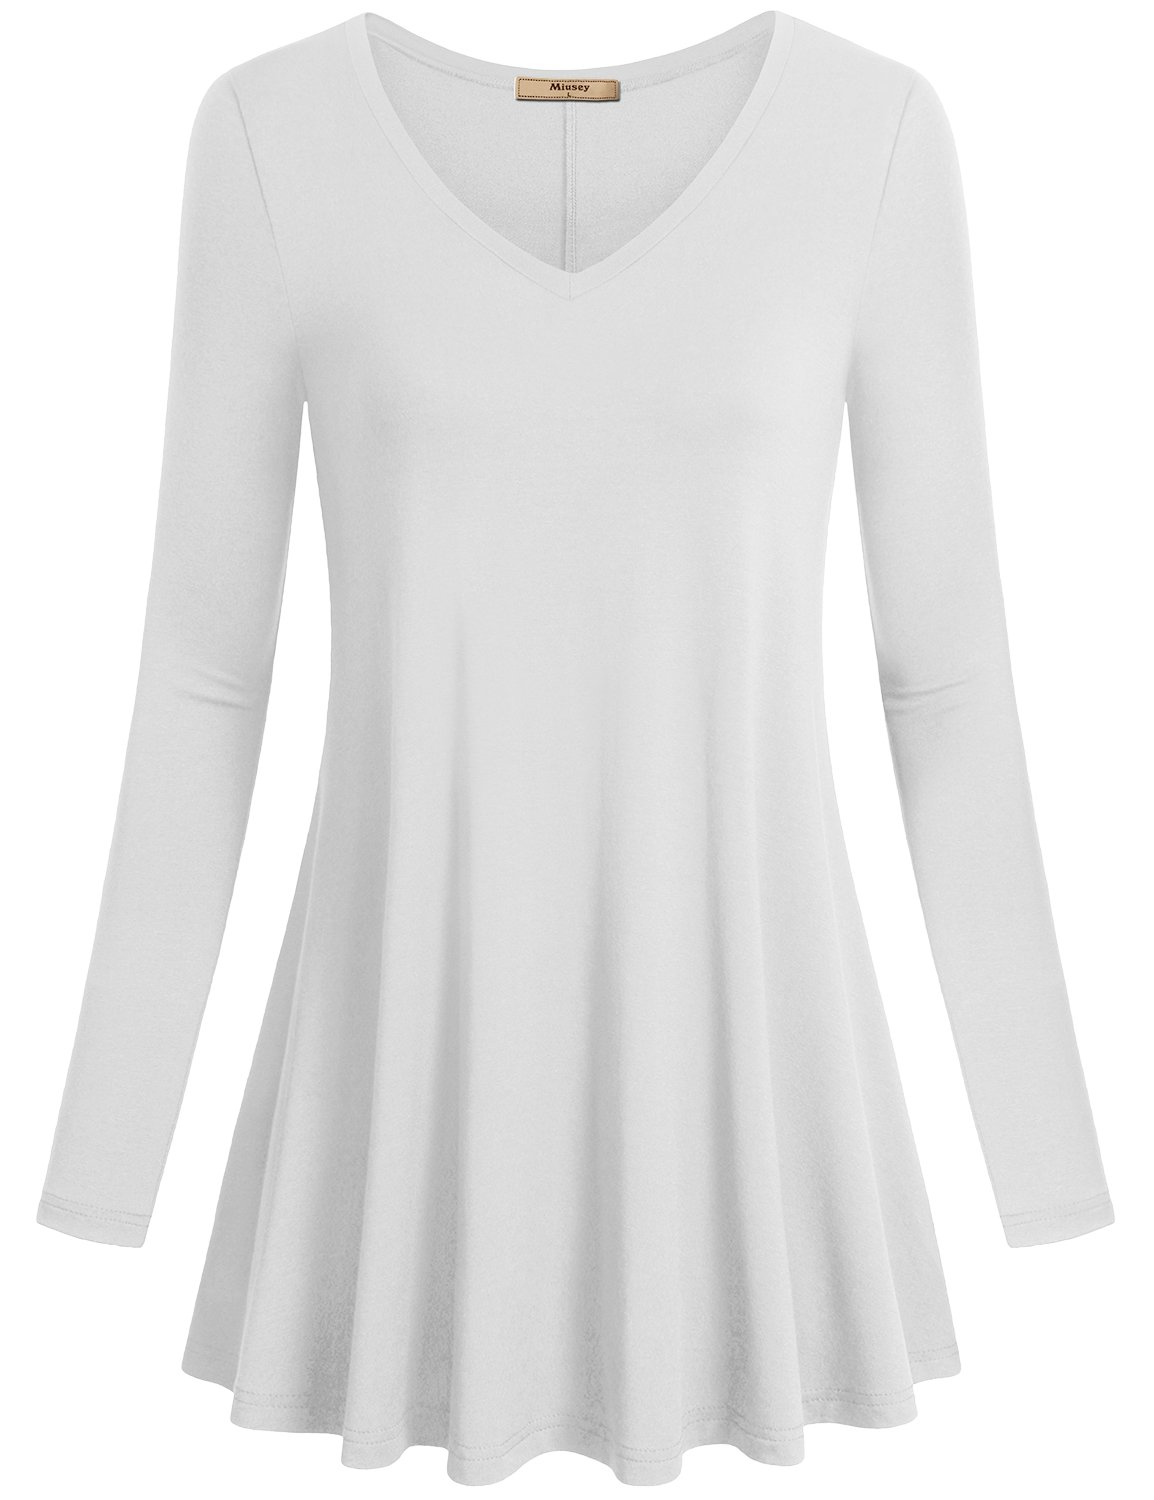 Miusey Loose Tops for Women, Ladies V Neck Long Sleeve Flared Shirt Flowy Leggings Fit Basic Swing Casual Tunic White Medium